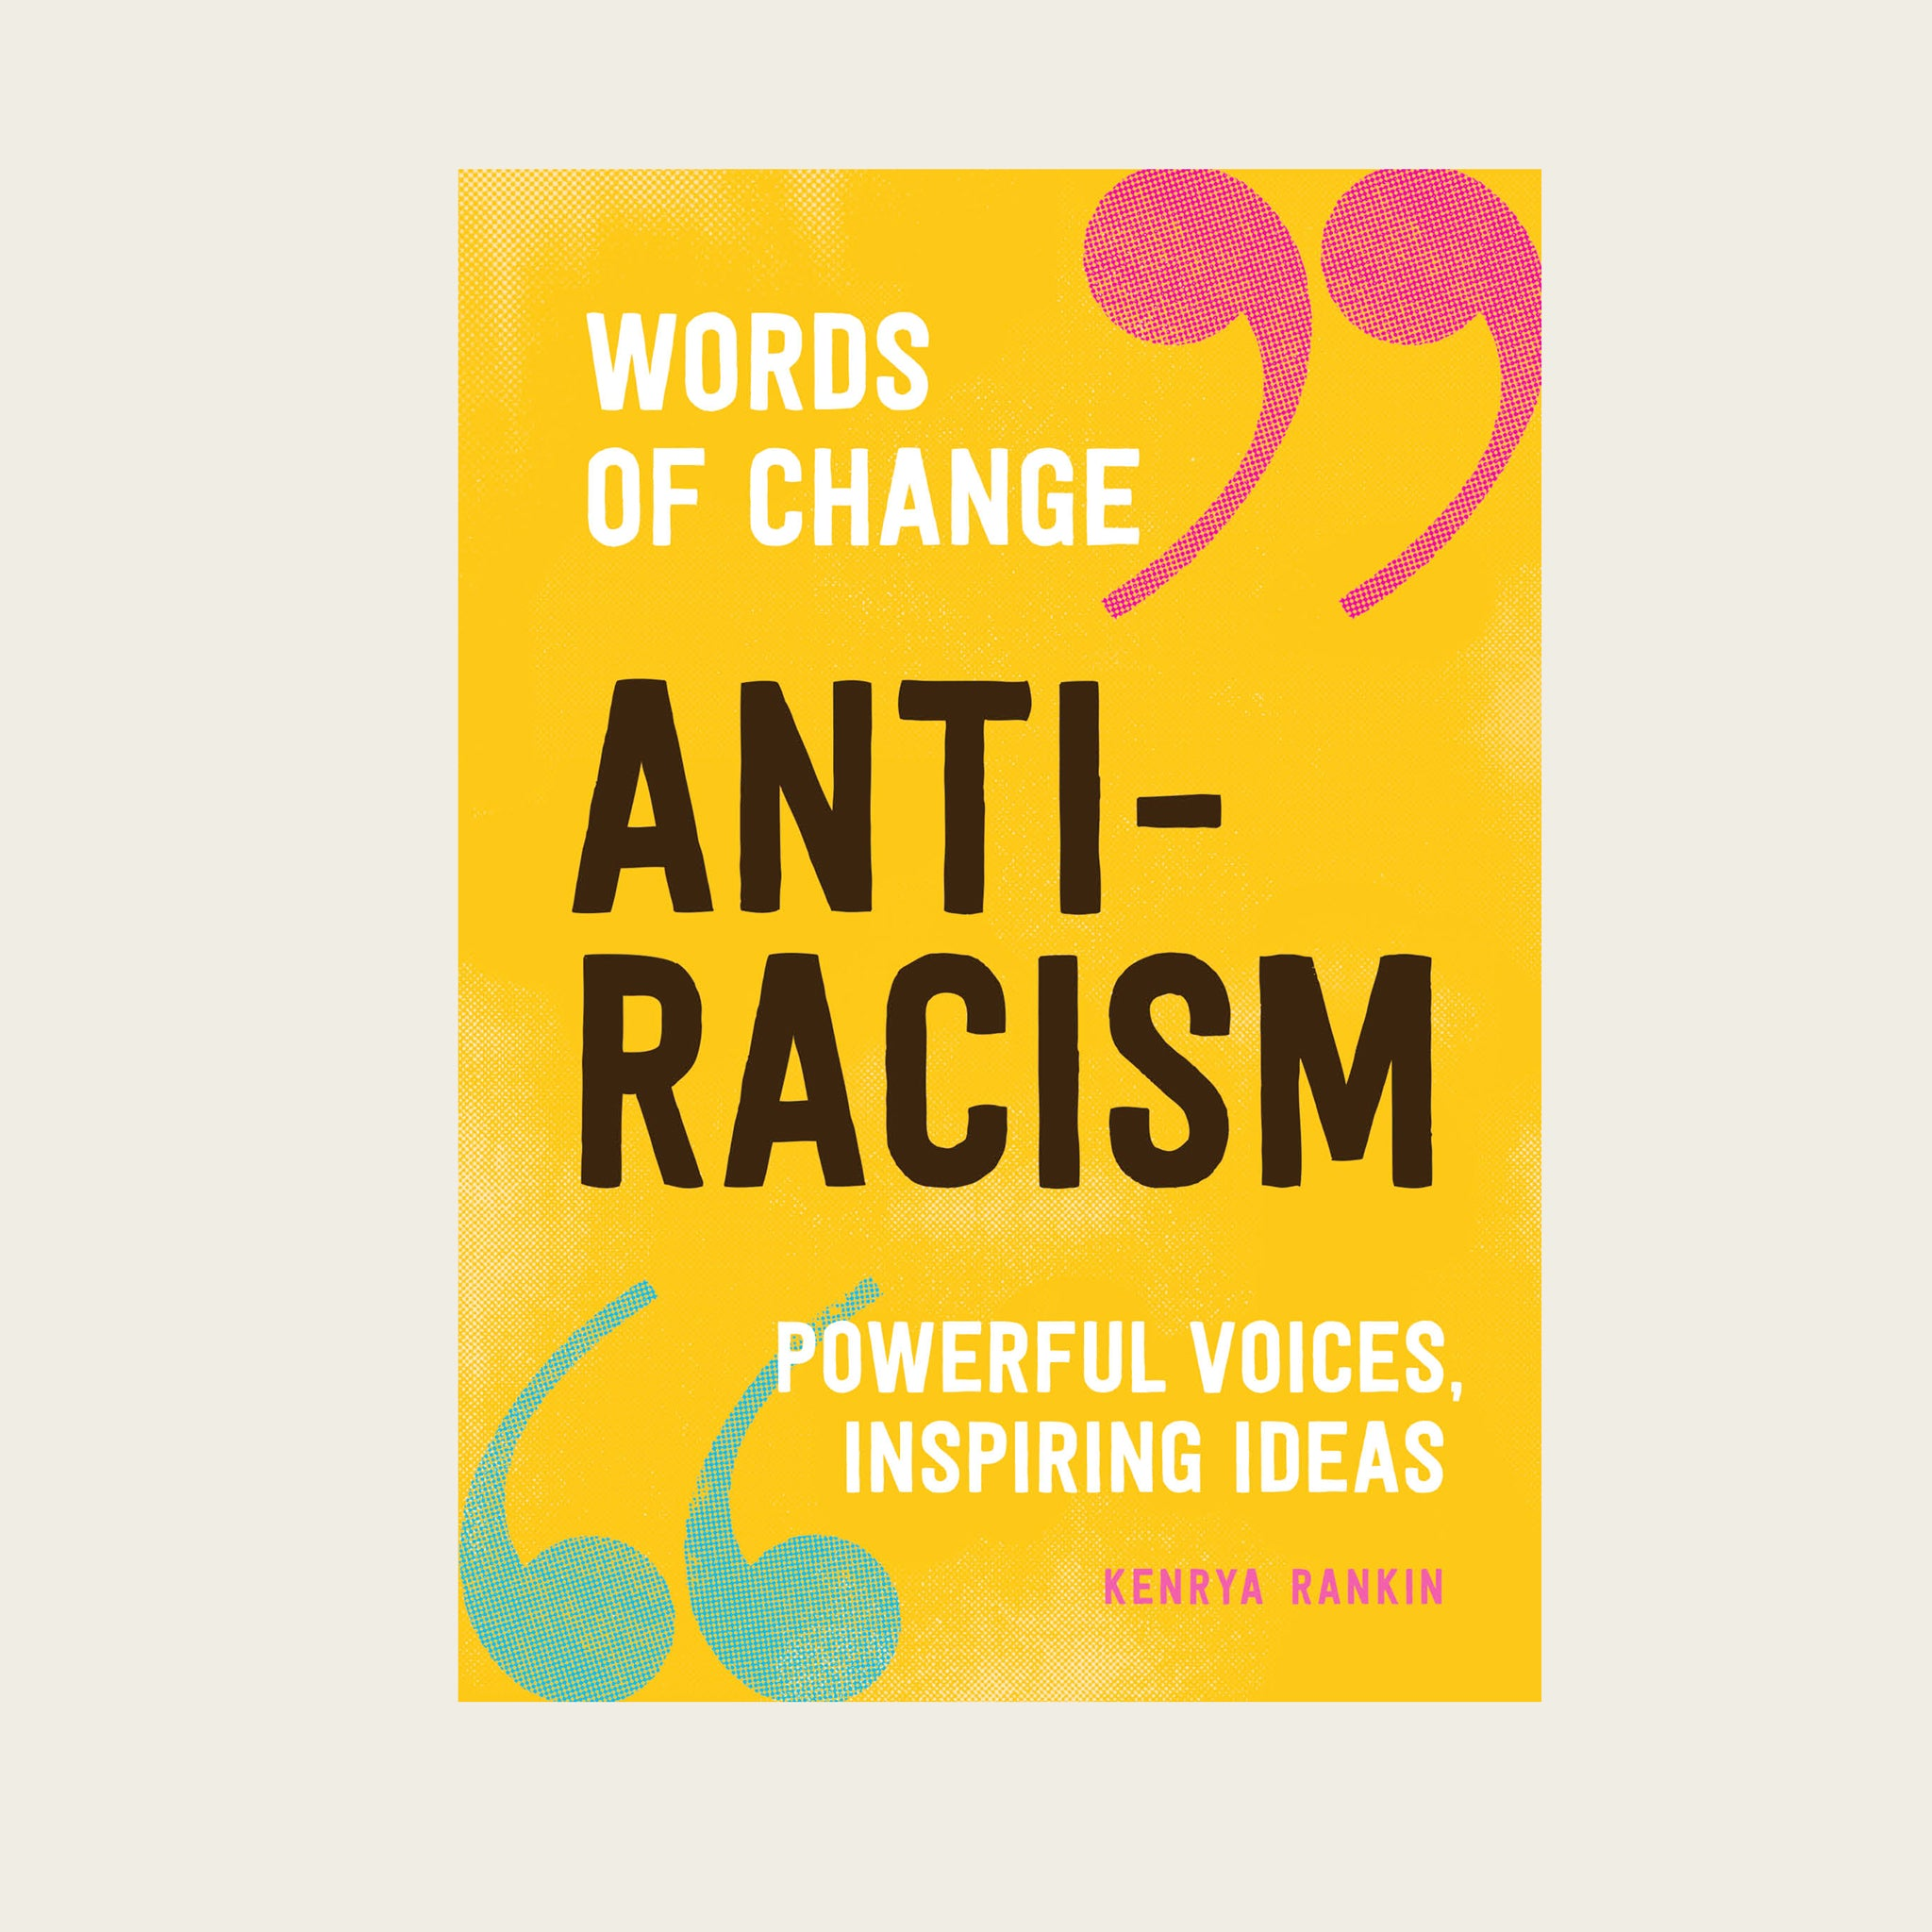 Anti-Racism (Words of Change)